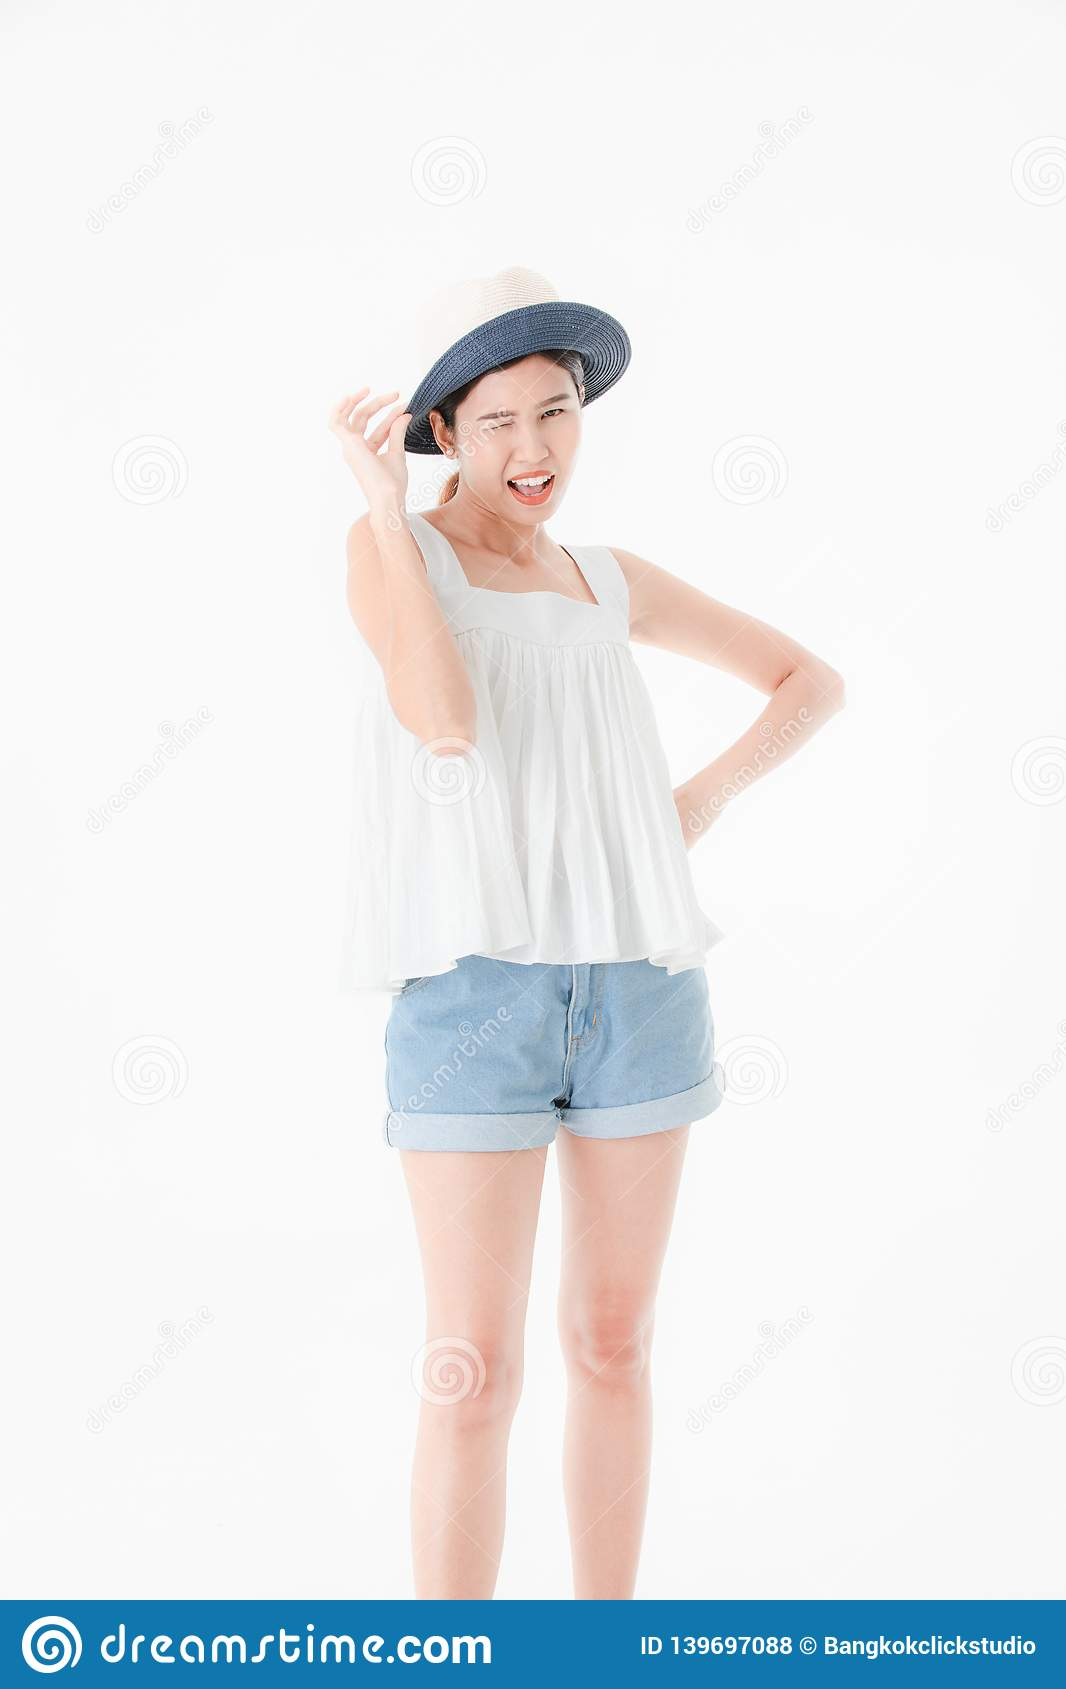 6a54b4b8d52d Young Lady In Casual Summer Outfits Stock Photo - Image of cute ...